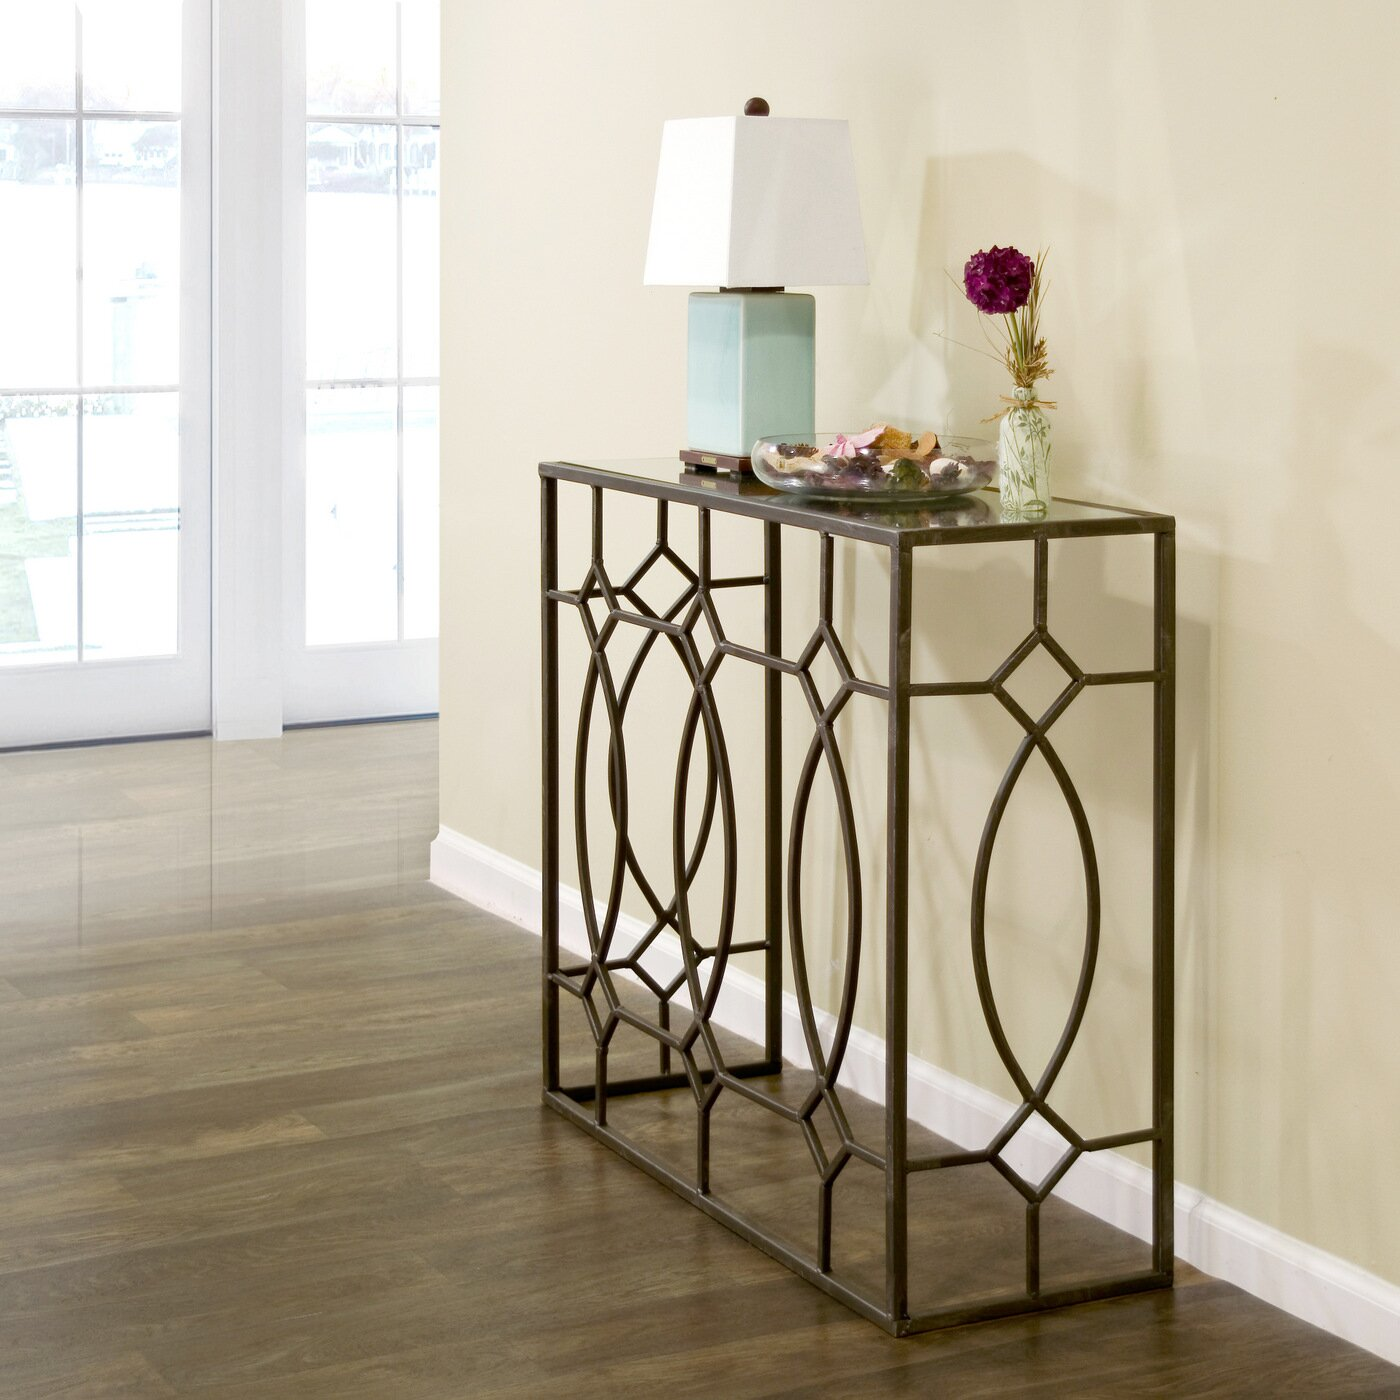 Glam Bedroom Design Photo By Wayfair: Glamour Home Decor Aaralyn Mirrored Console Table